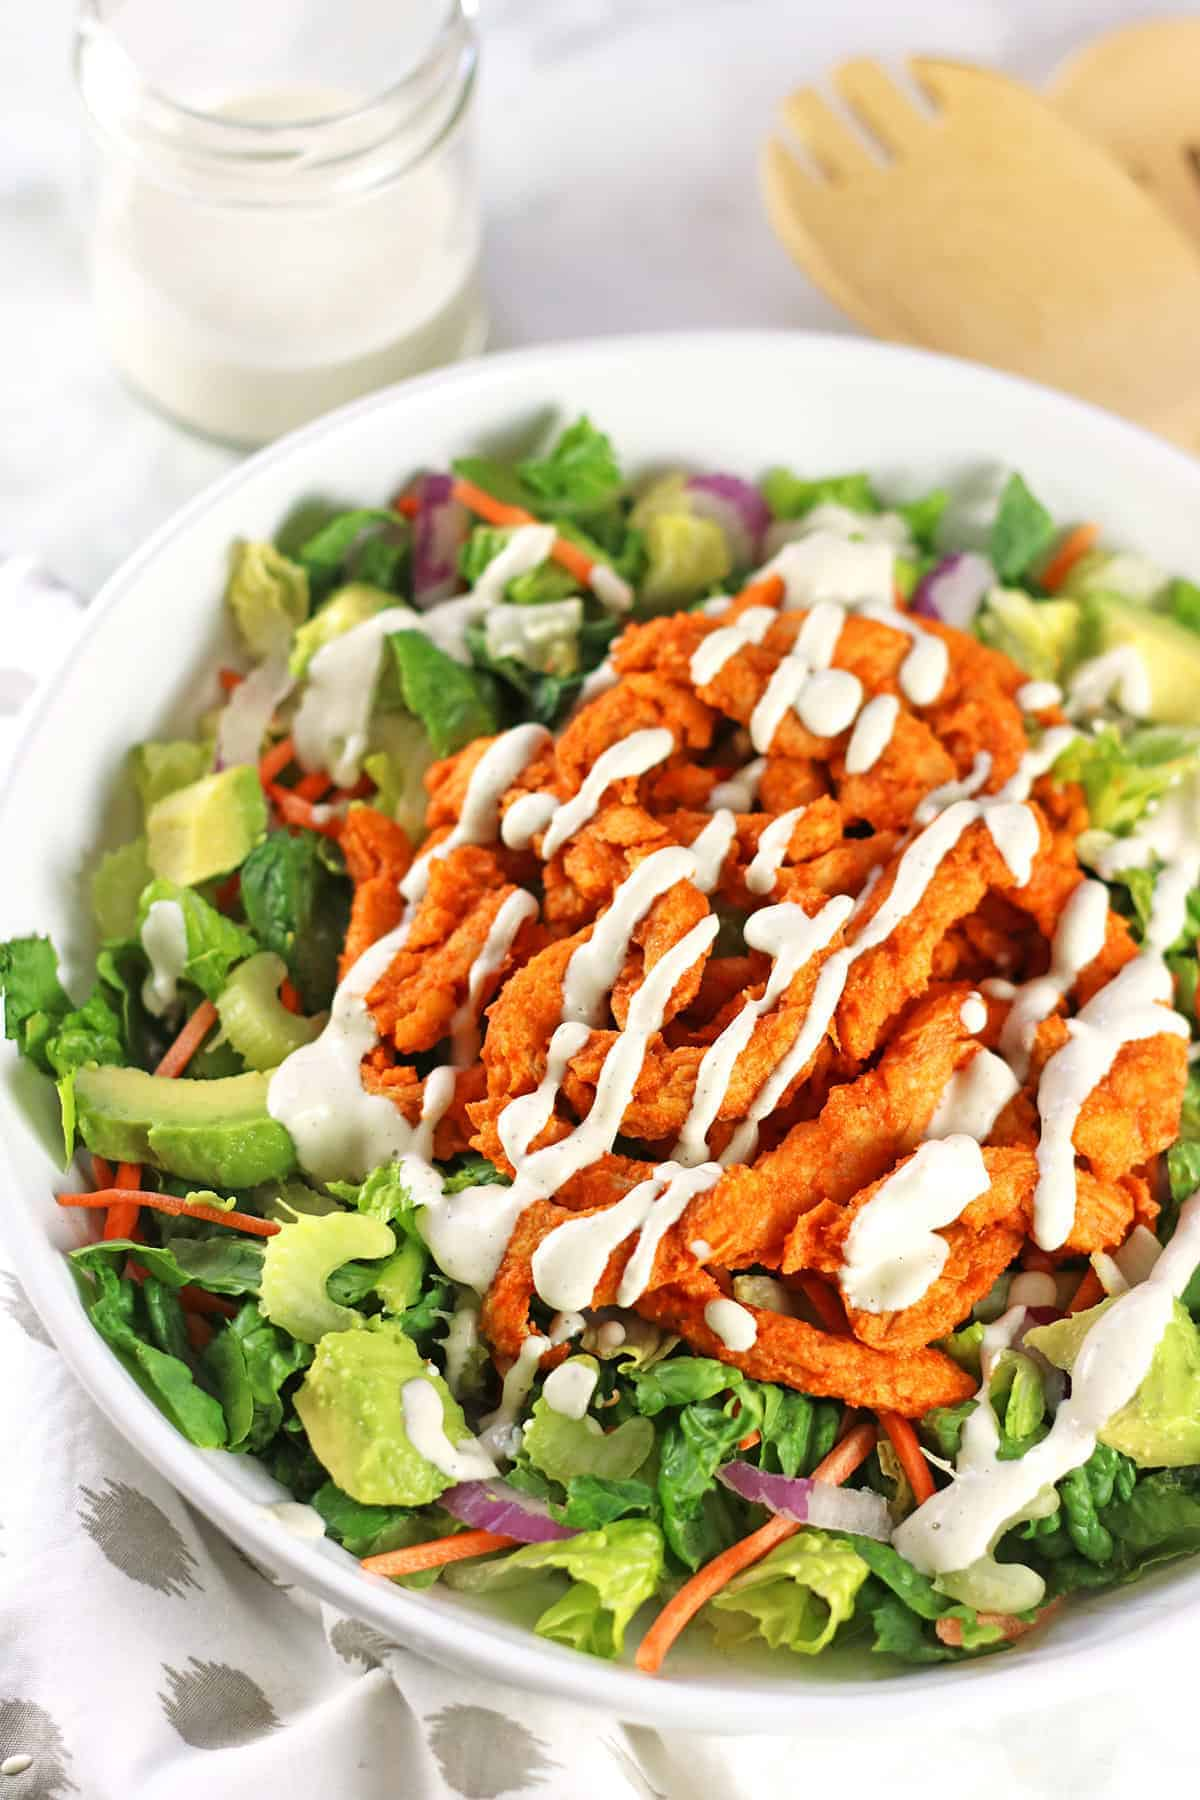 bright photo of a green salad topped with buffalo strips and avocado.